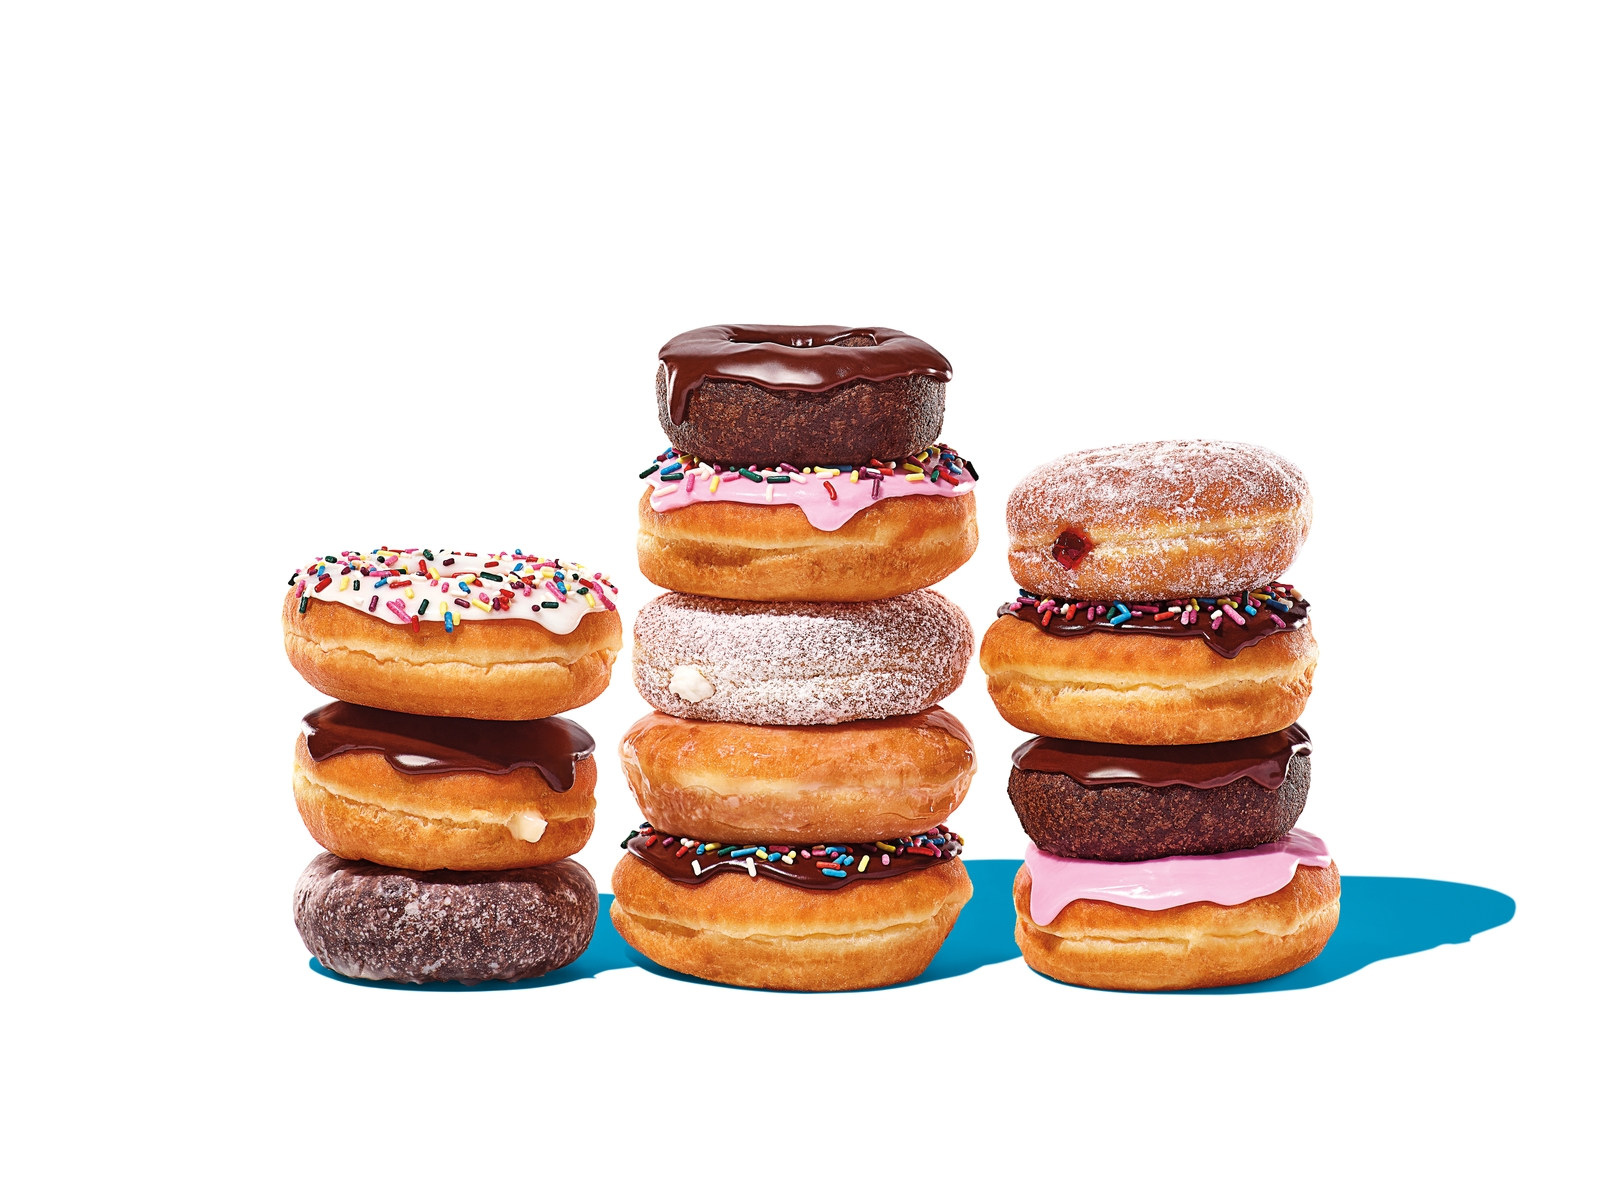 Yeast Donut Vs. Cake Donut Vs. French Cruller: What's The Difference?